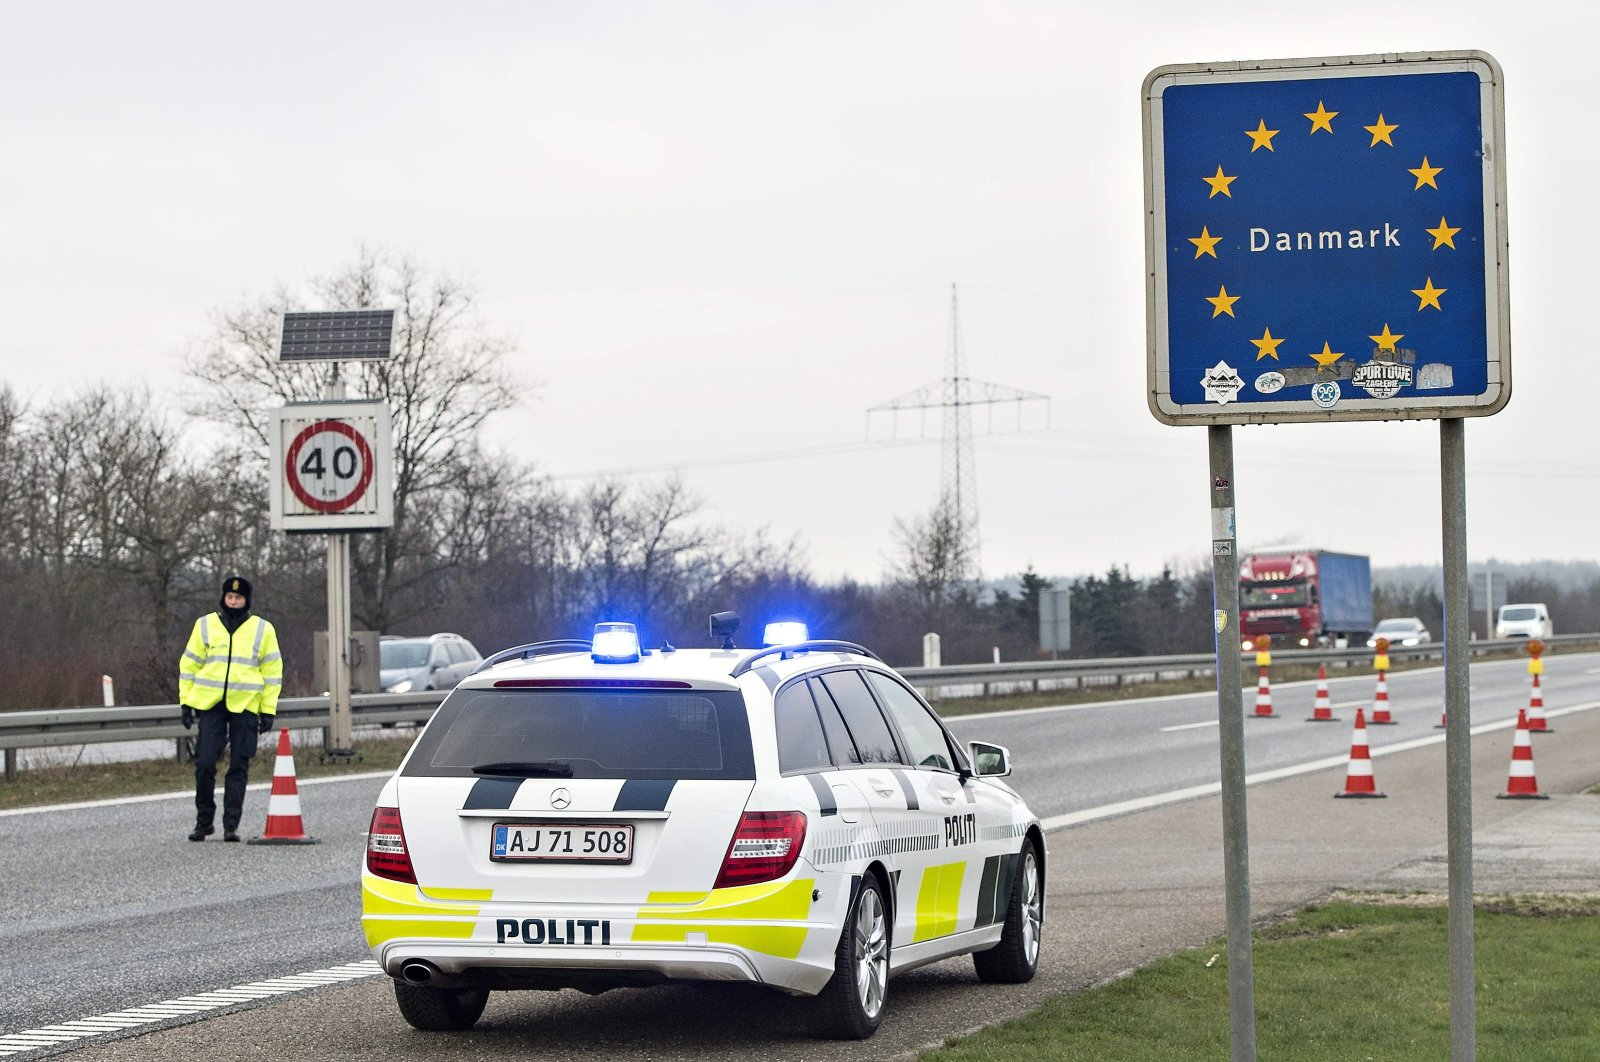 Danish police officers check vehicles at the border town of Padborg, Denmark, Jan. 4, 2016. (REUTERS Photo)